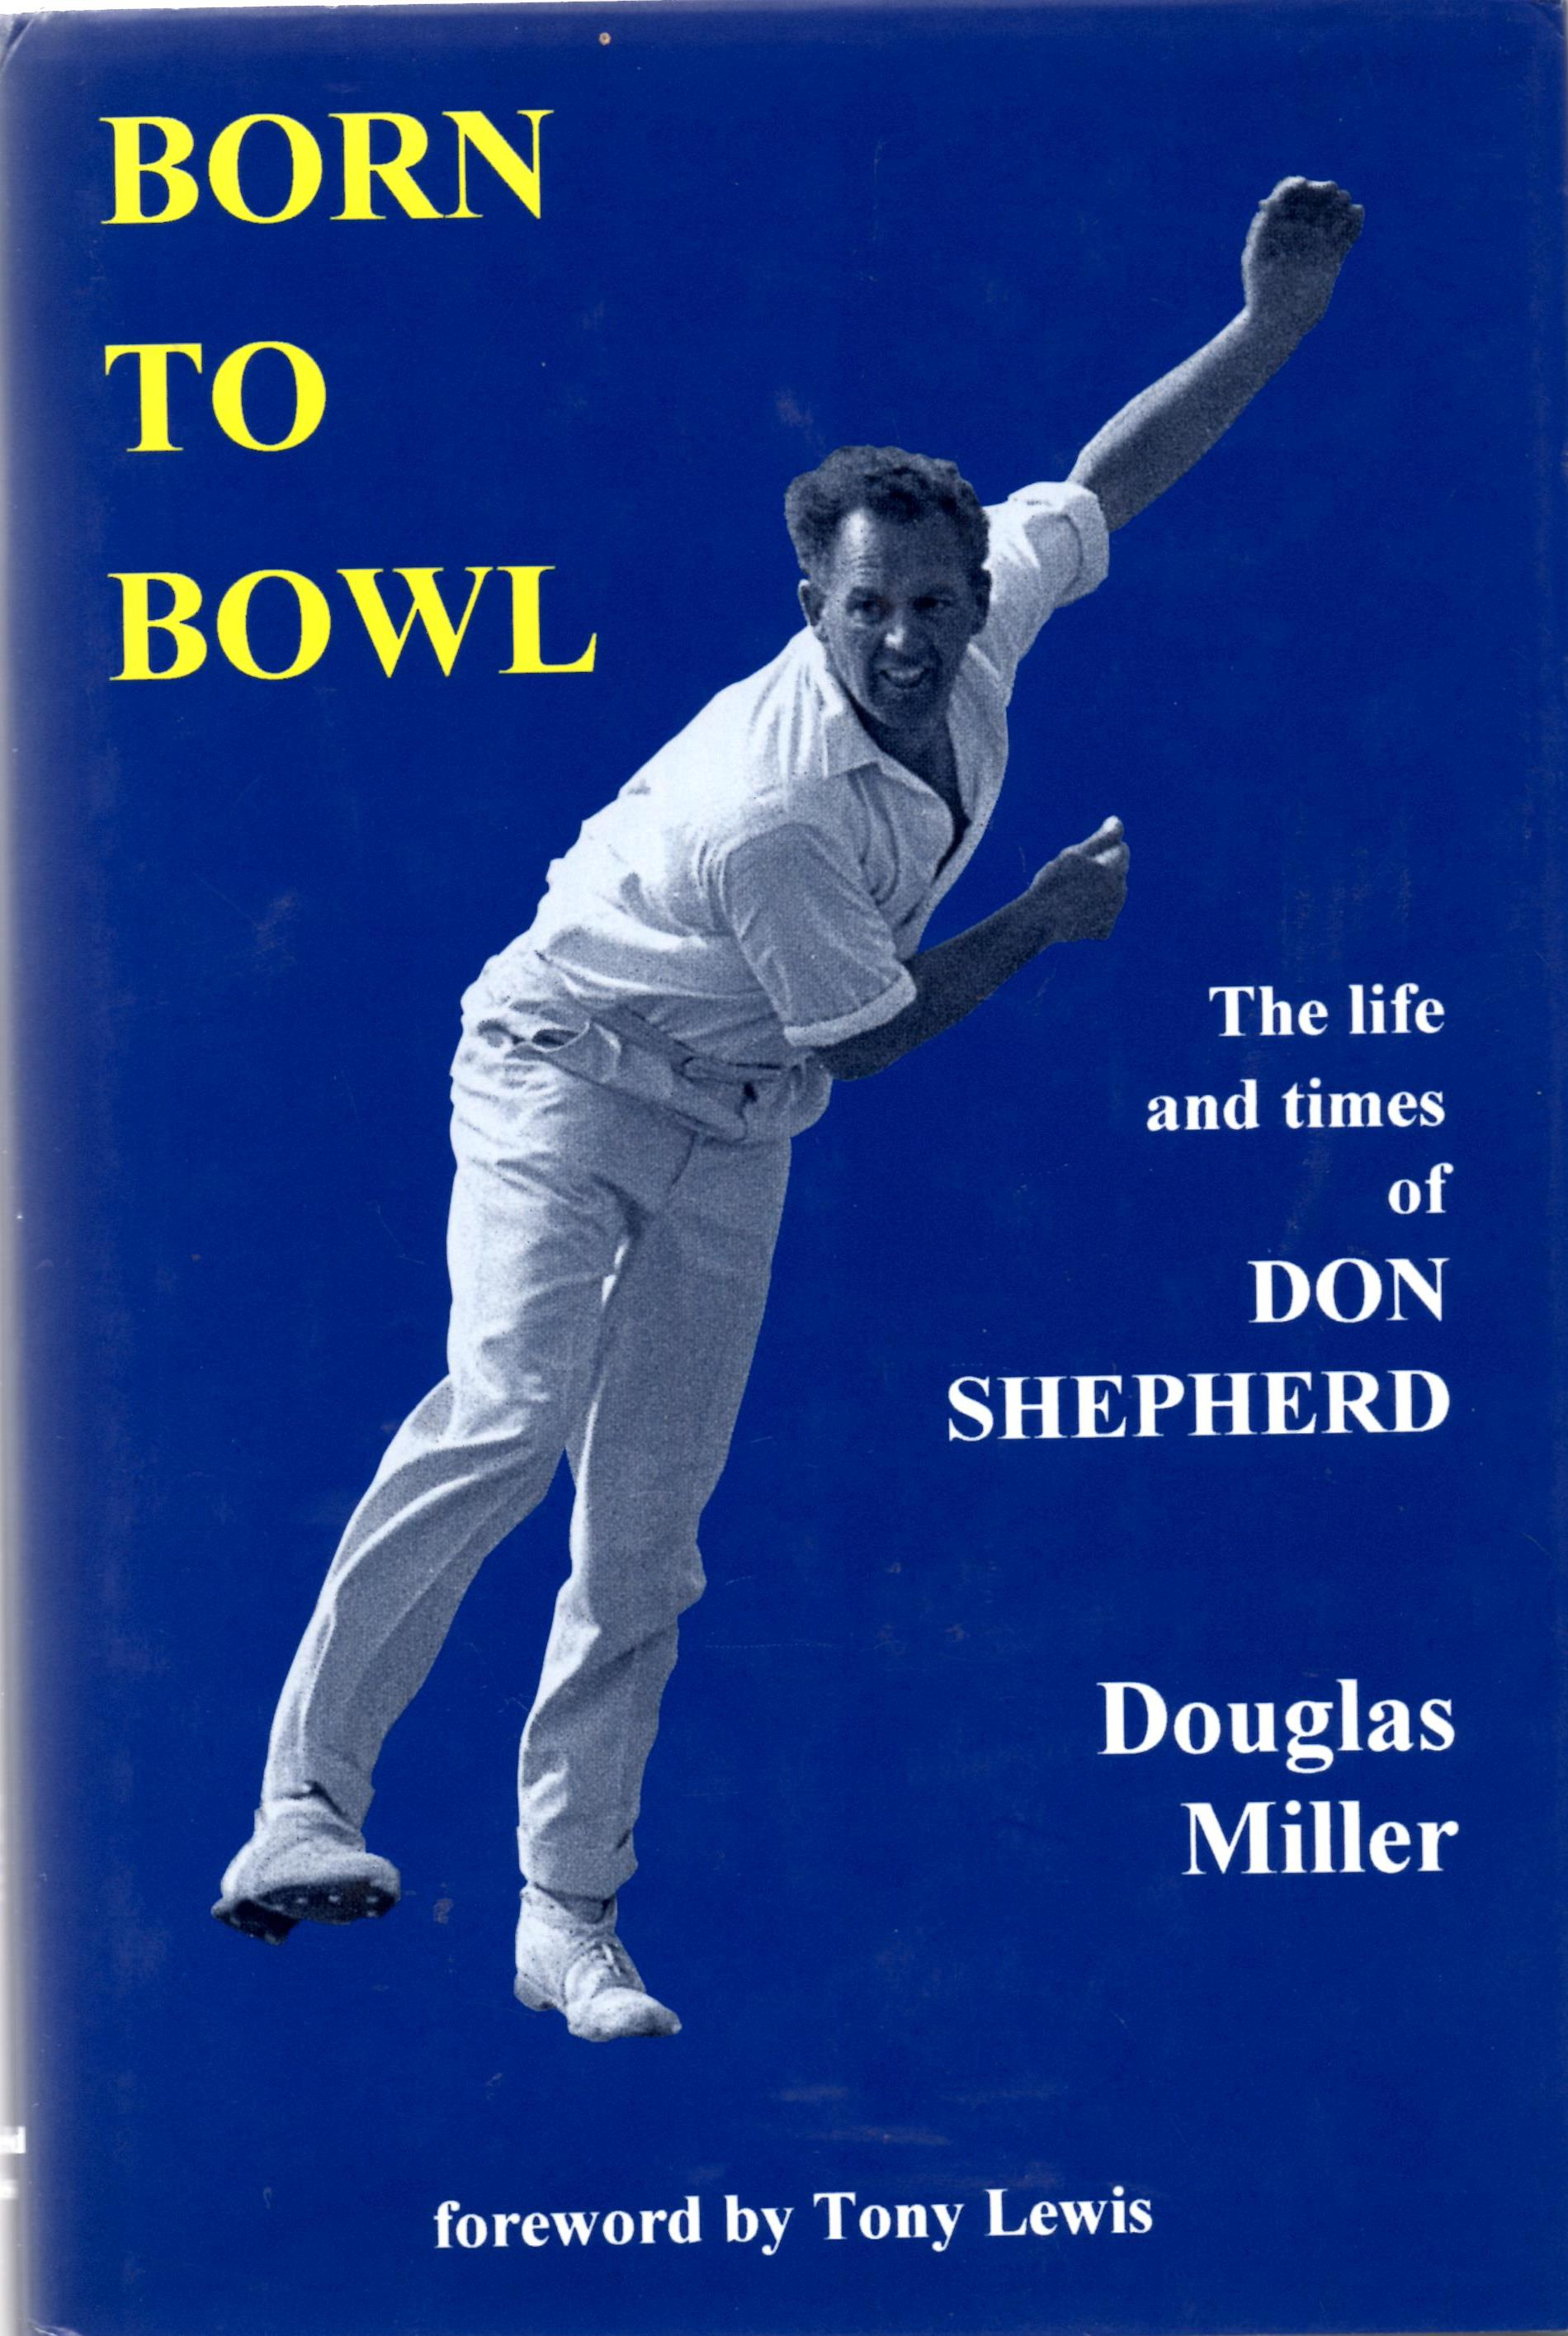 Born to Bowl: The life and times of Don Shepherd